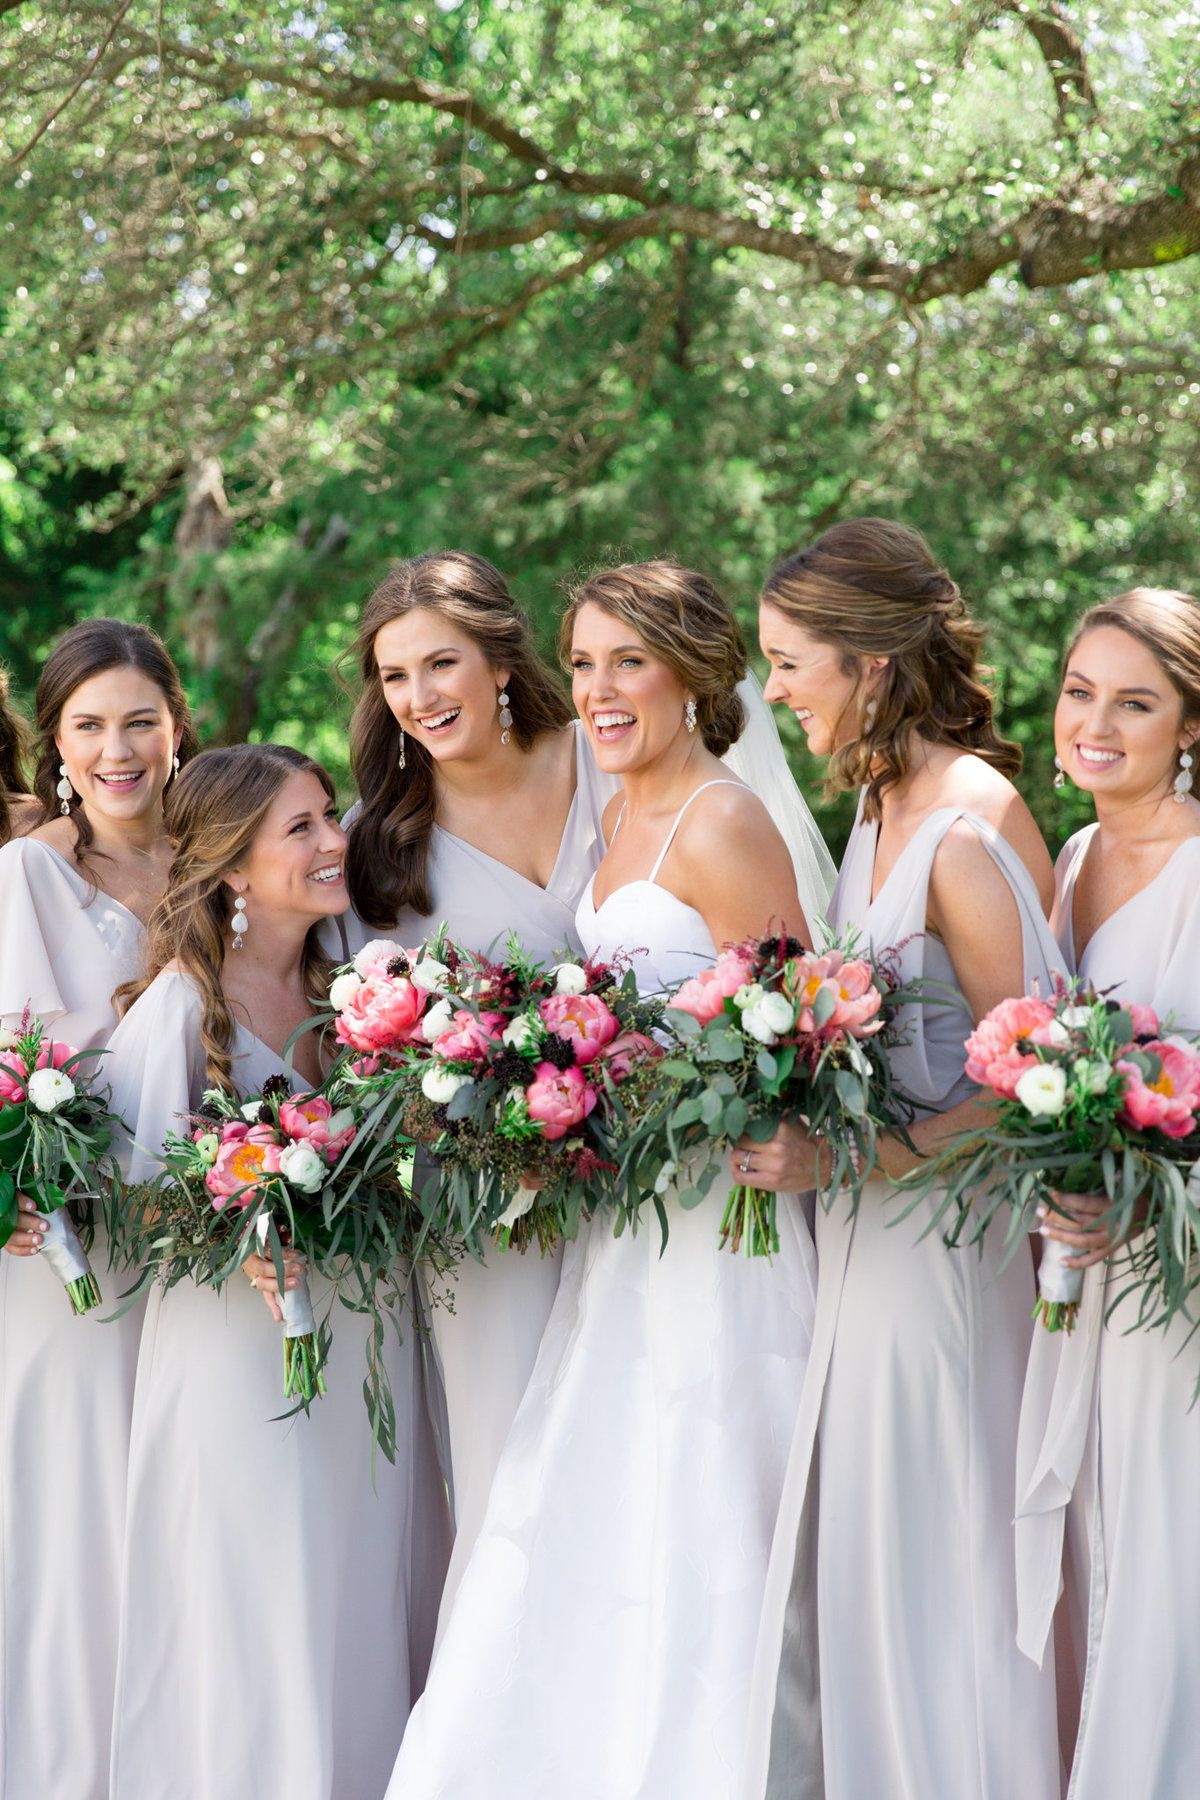 Brianna & Wes | Dallas Wedding Photographer | Sami Kathryn Photography-7936